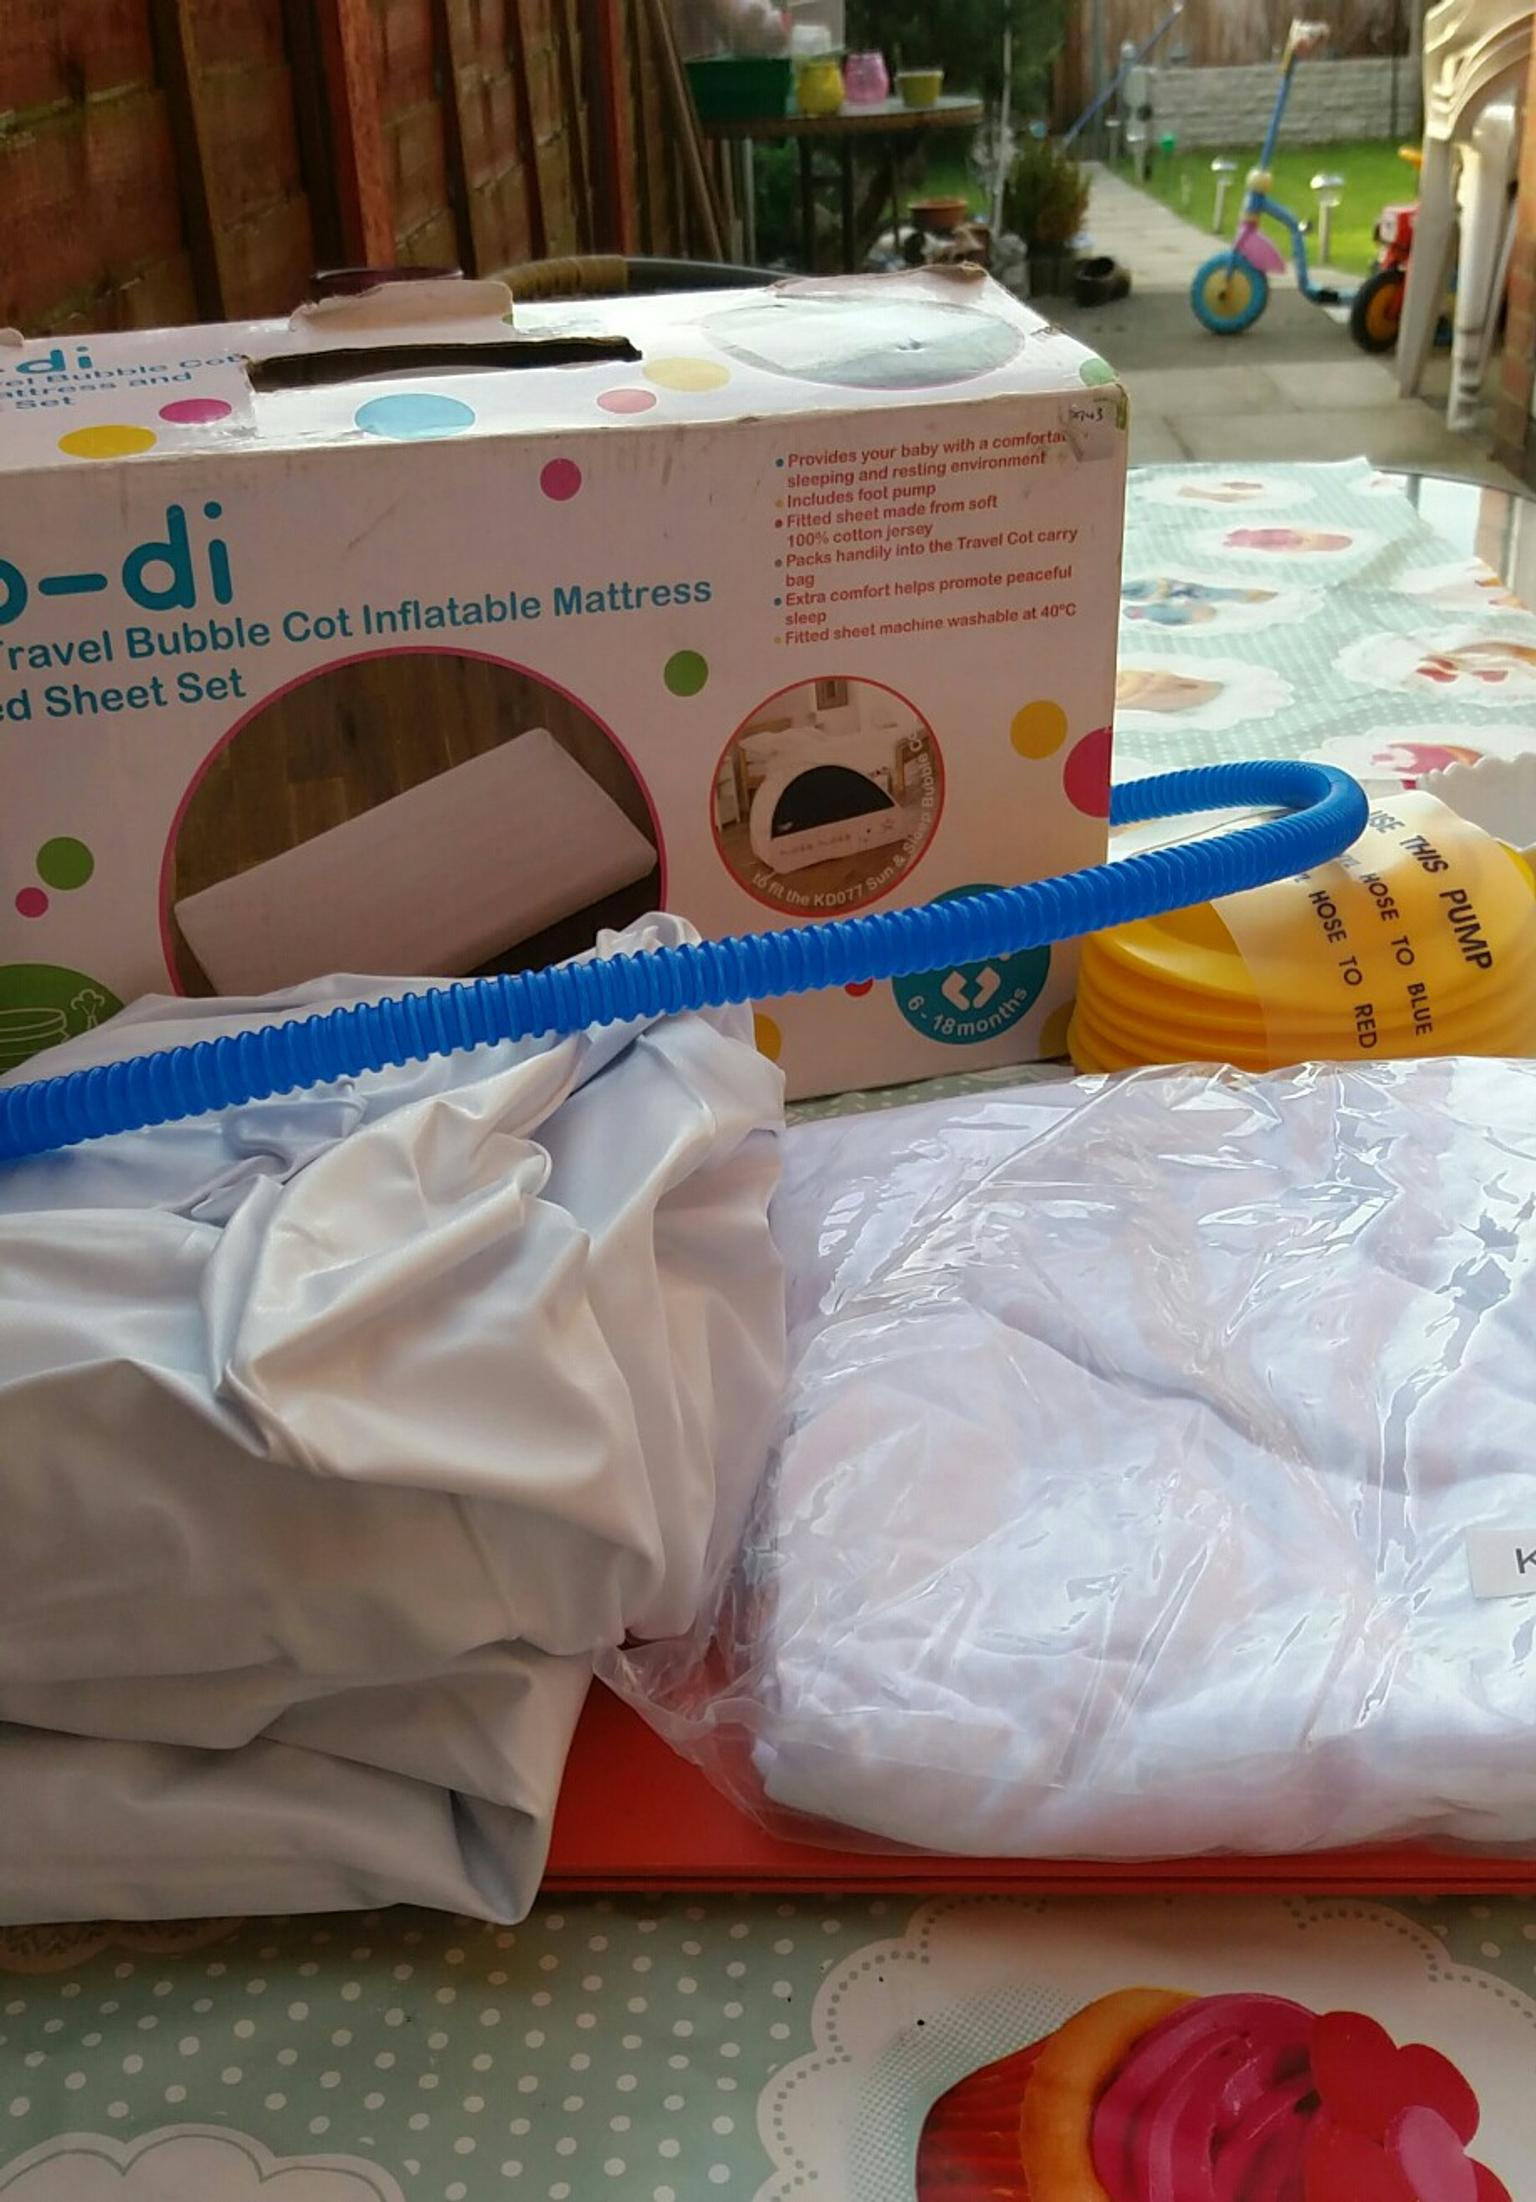 Koo-di Inflatable Mattress and Fitted Sheets Set for the Bubble Cot